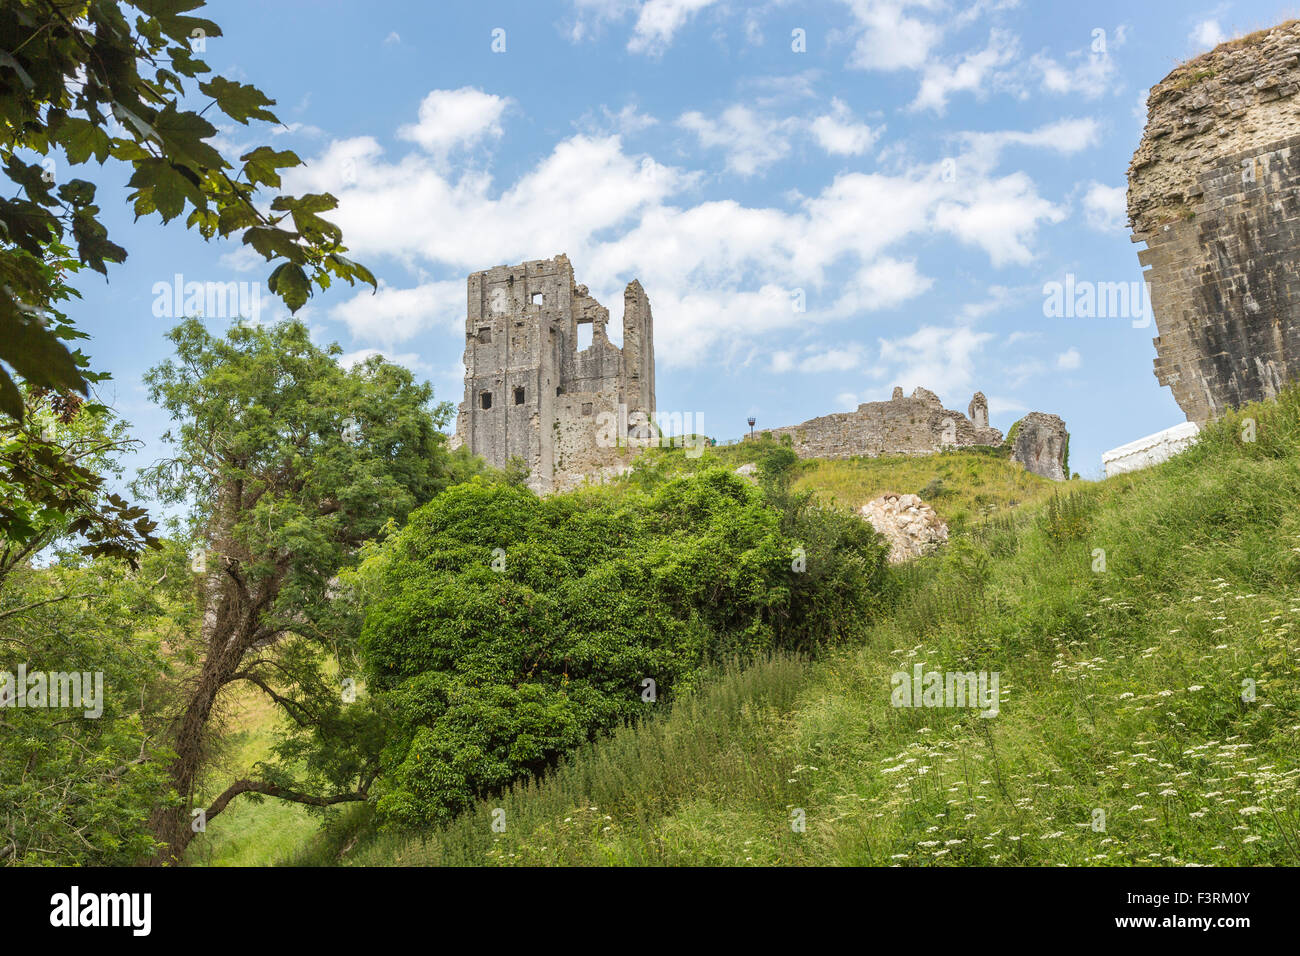 The hilltop ruins of Corfe Castle in Corfe, Dorset, south-west England on a sunny day with blue sky - Stock Image